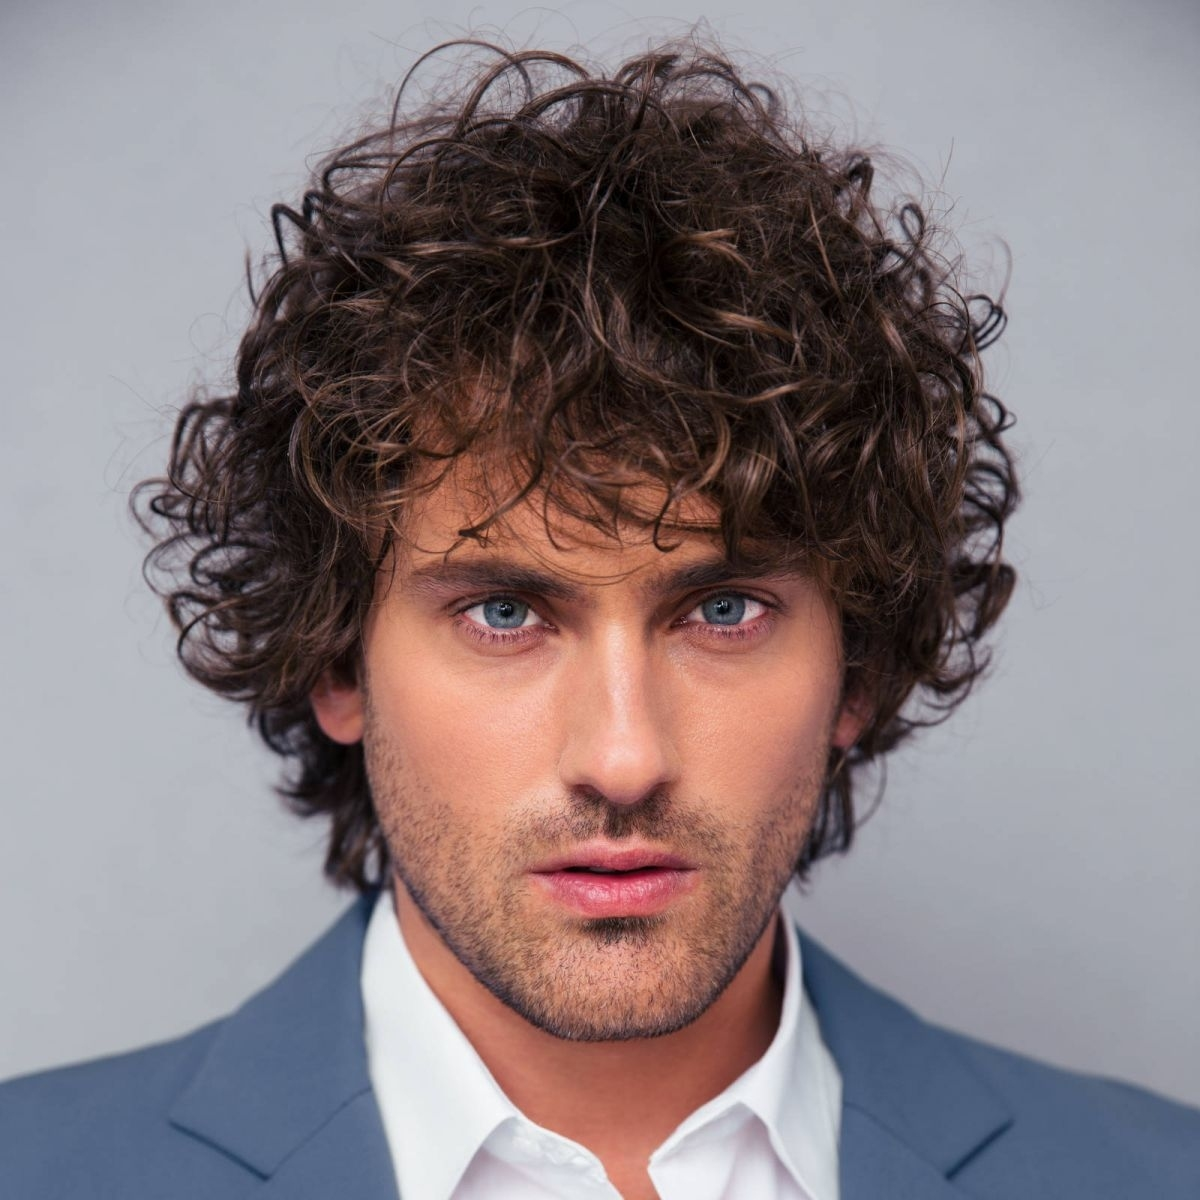 40 Modern Men's Hairstyles For Curly Hair (That Will Change Your Look) throughout Haircut For Curly Hair Guys